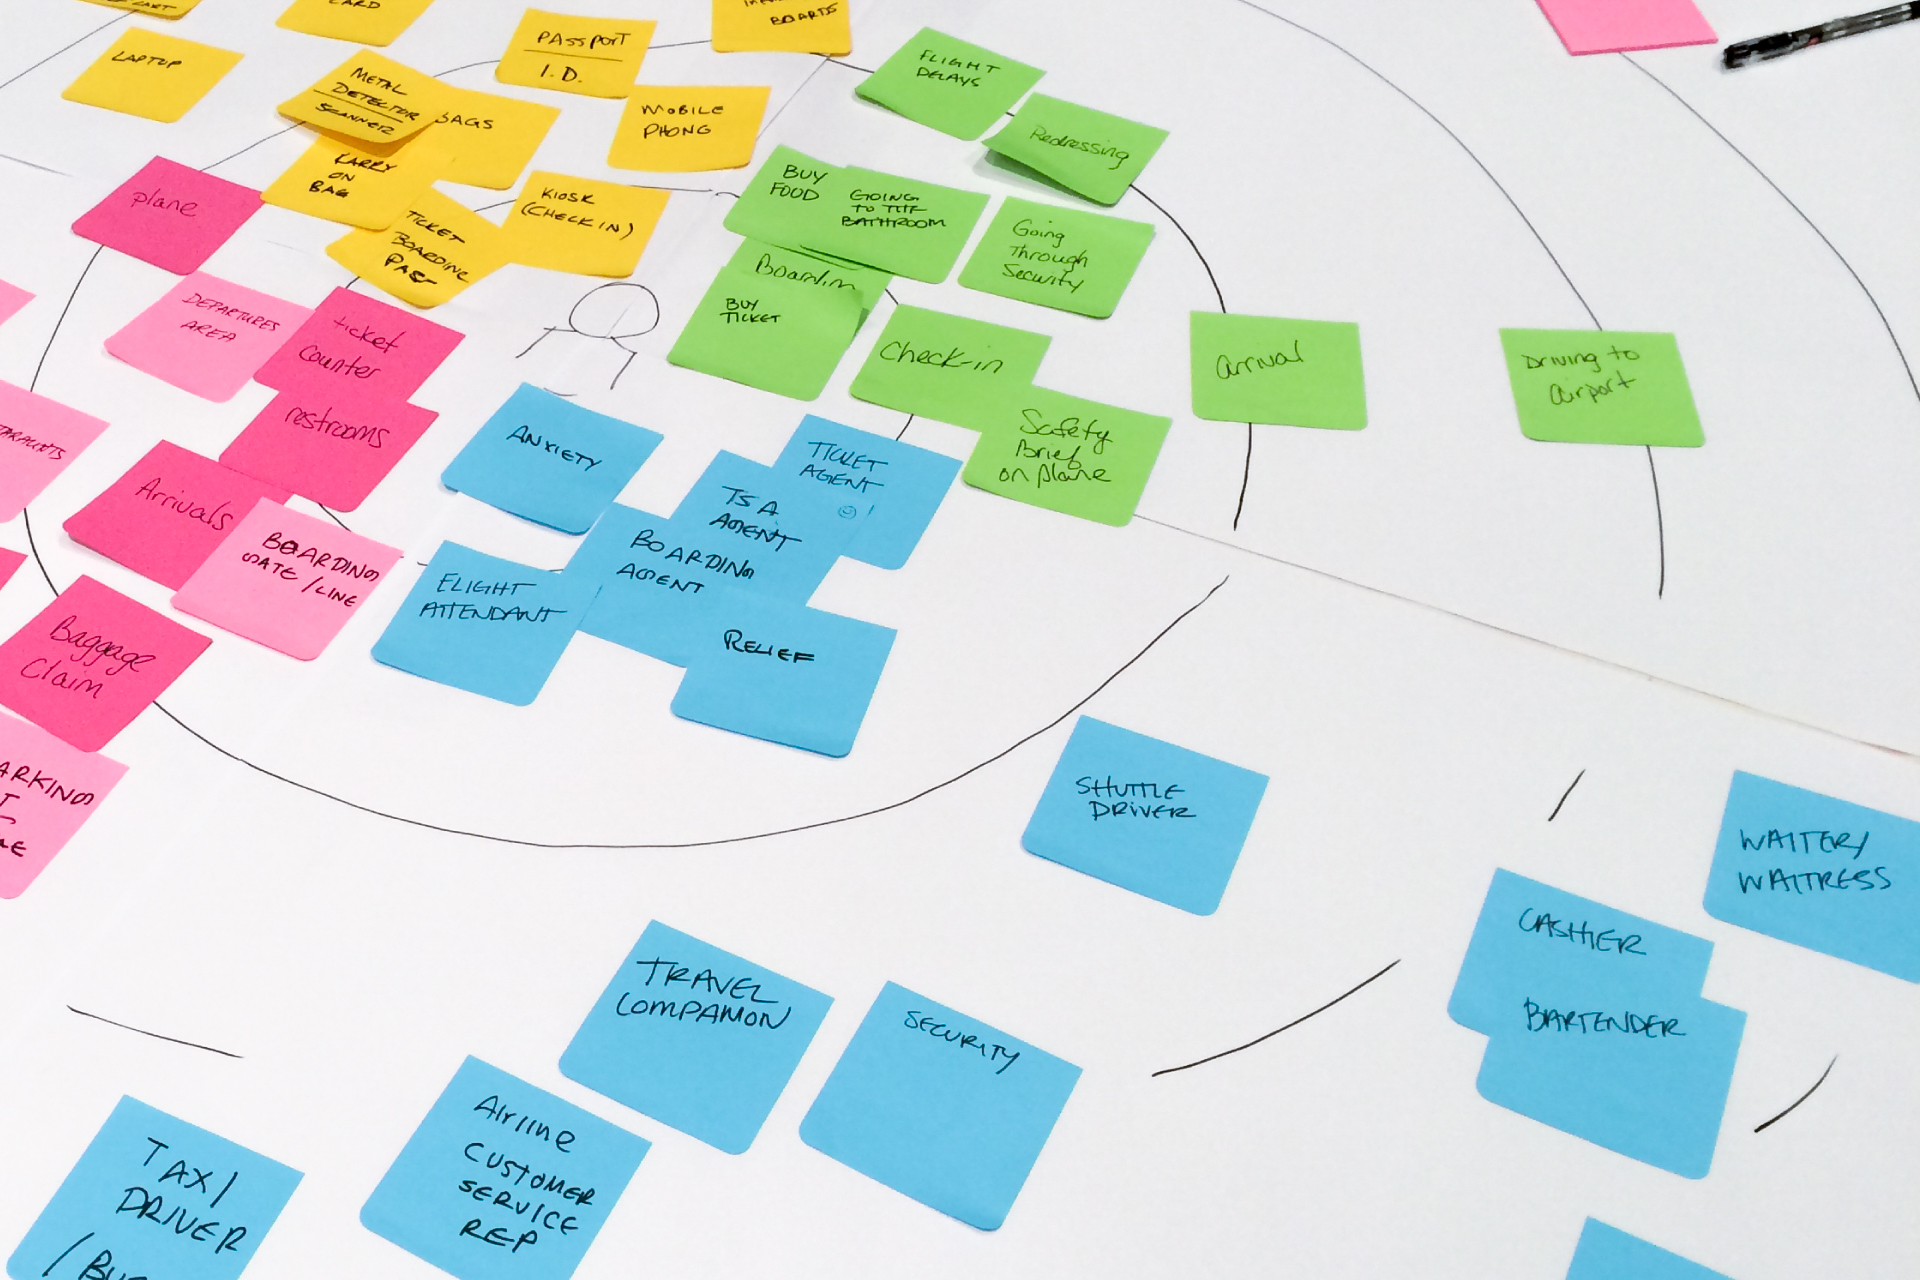 Why Human-Centered Design is an Expectation